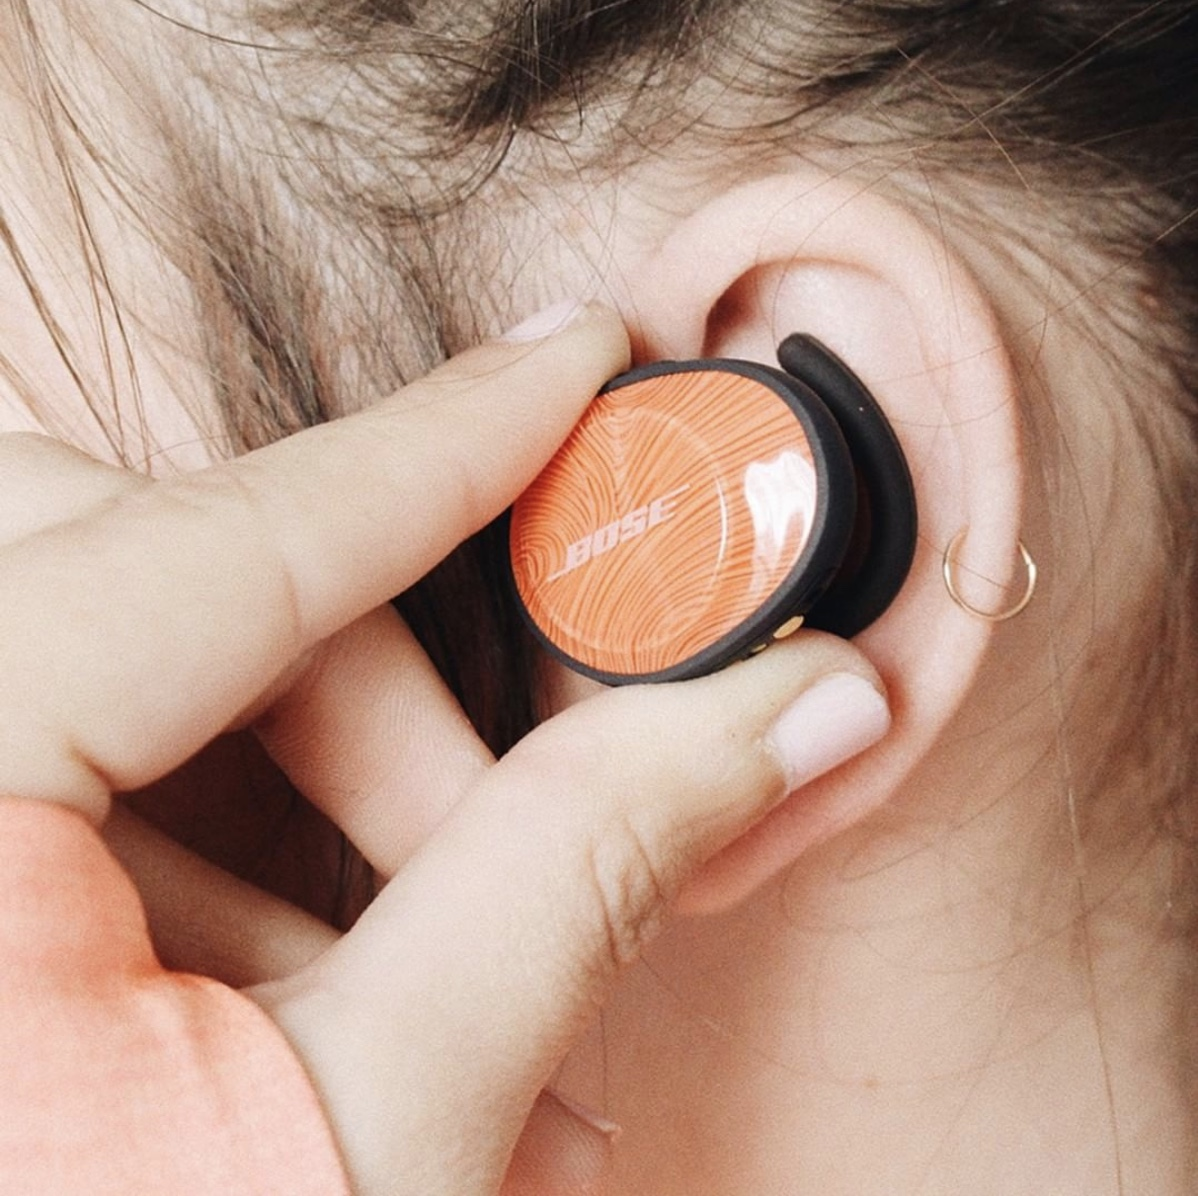 Fits comfortably in your ear and stays there. Check them out at Bose.com!